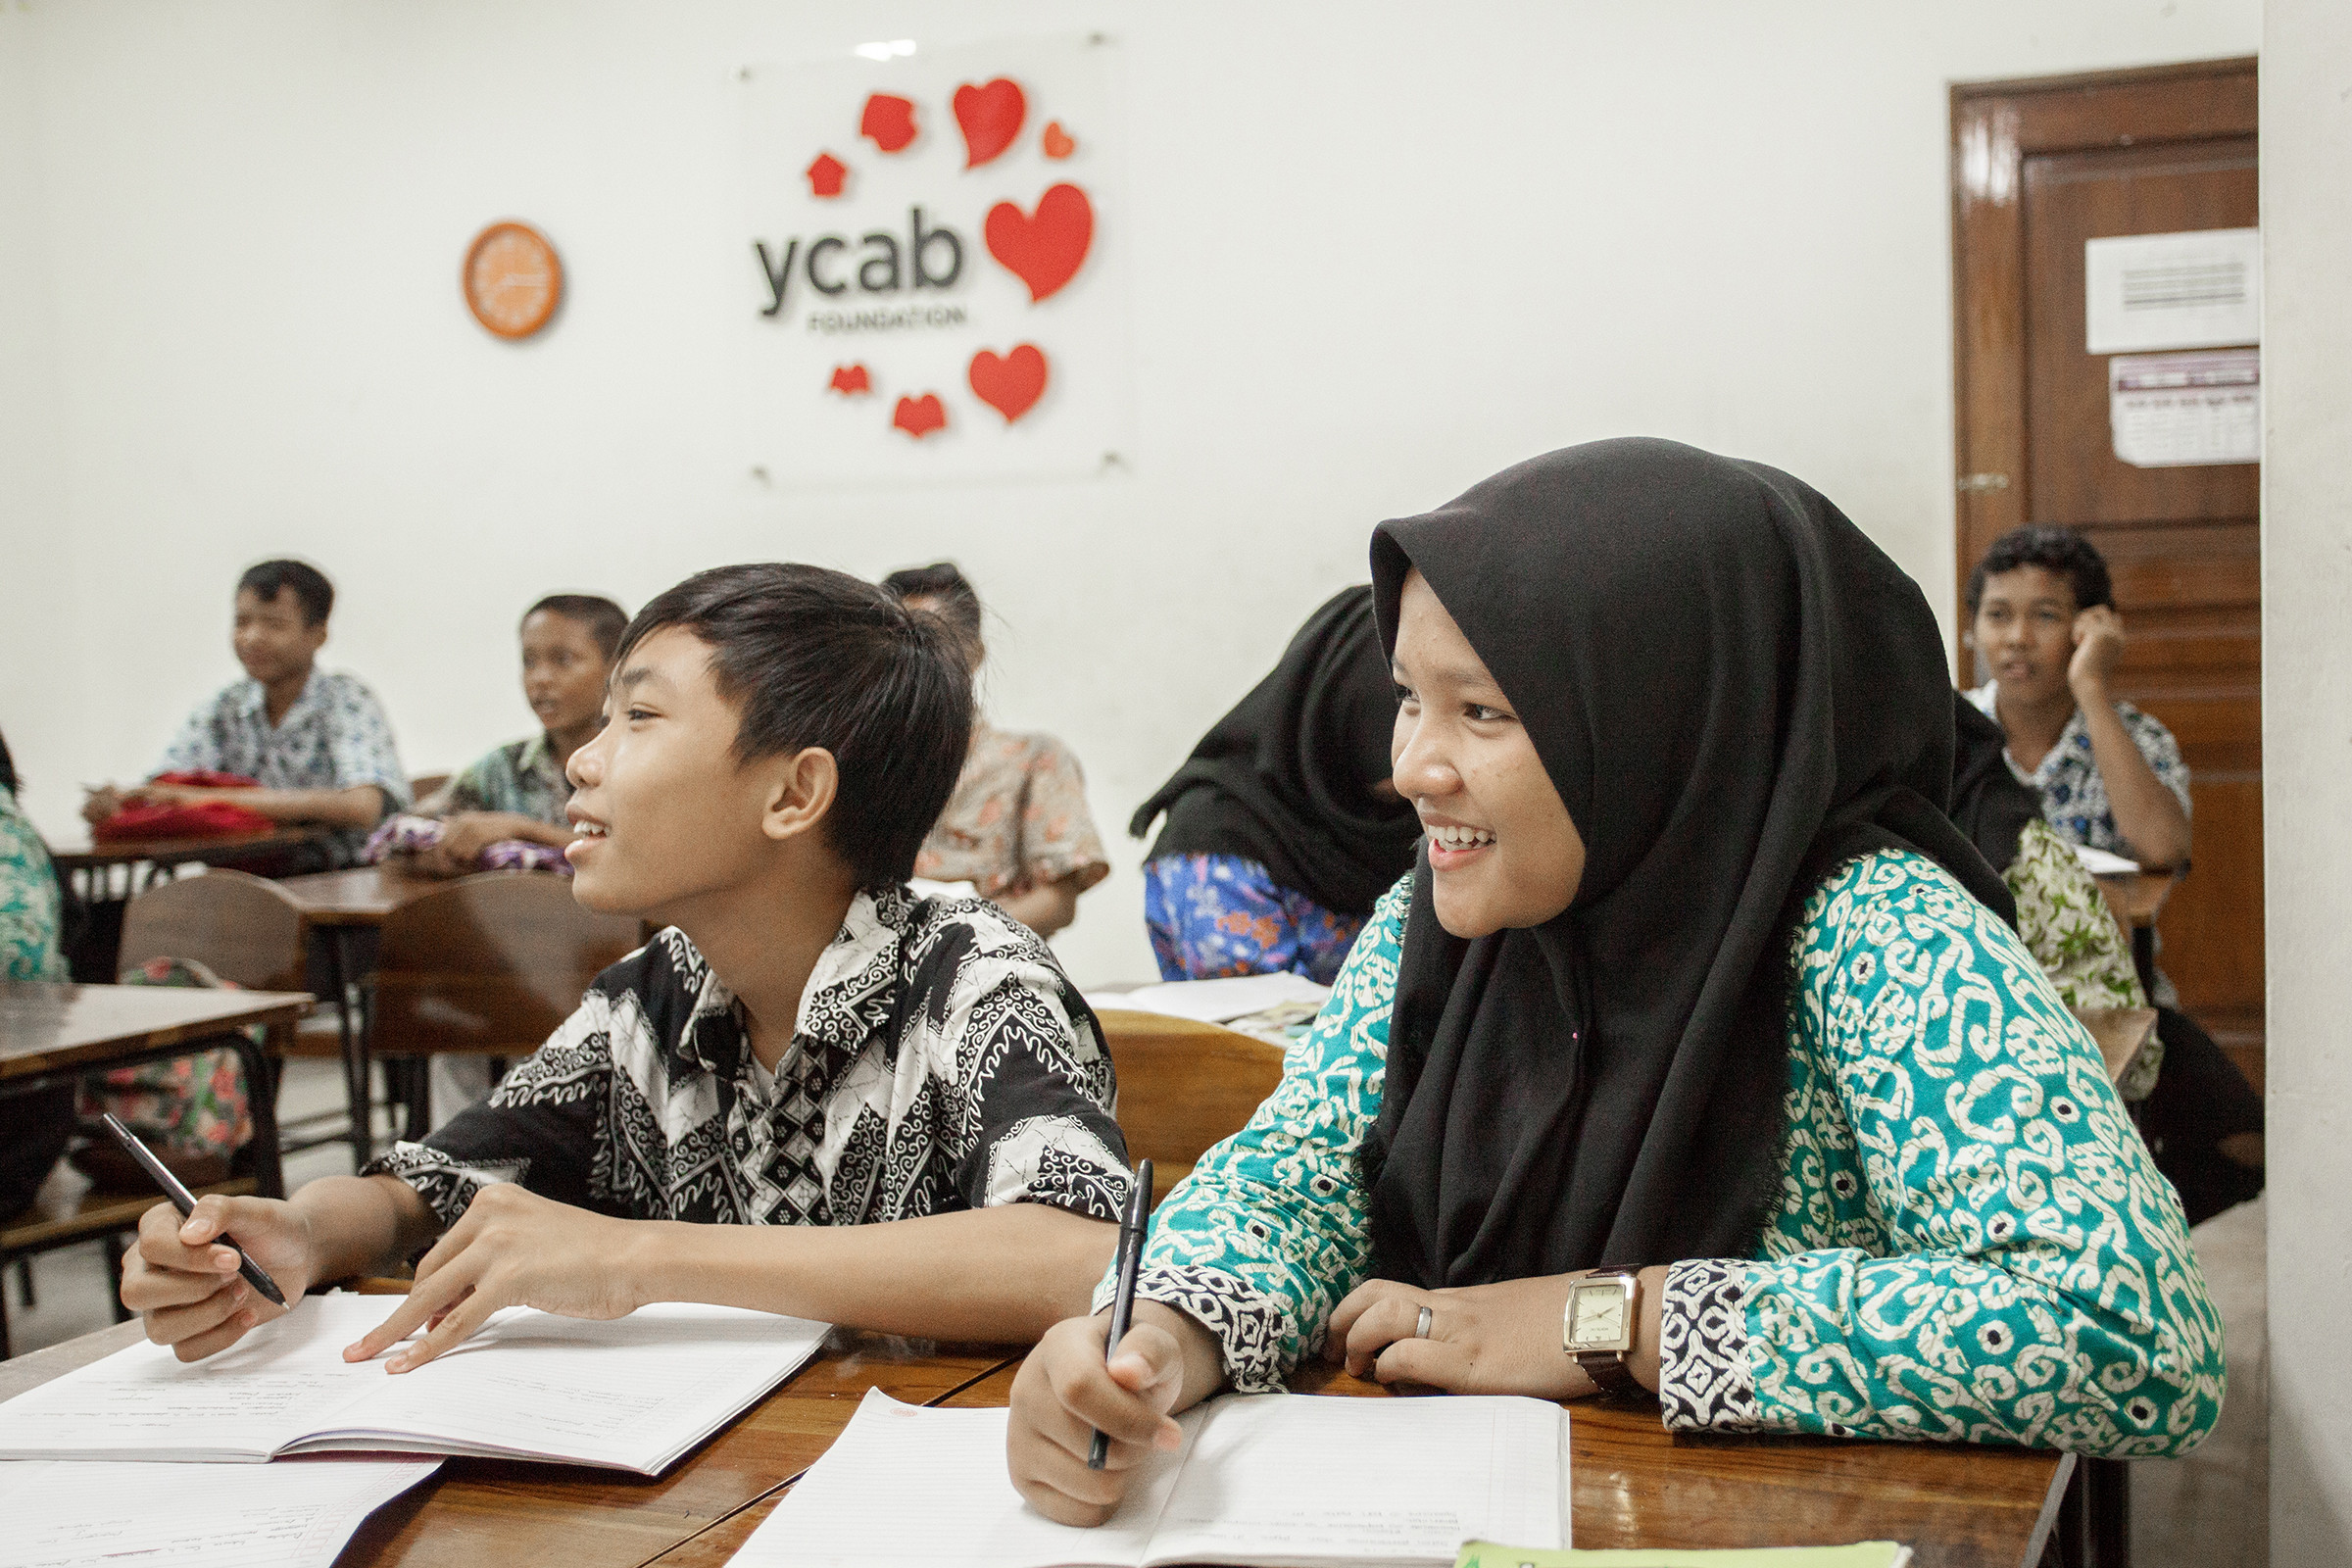 Young people in class at YCAB Foundation training centre.